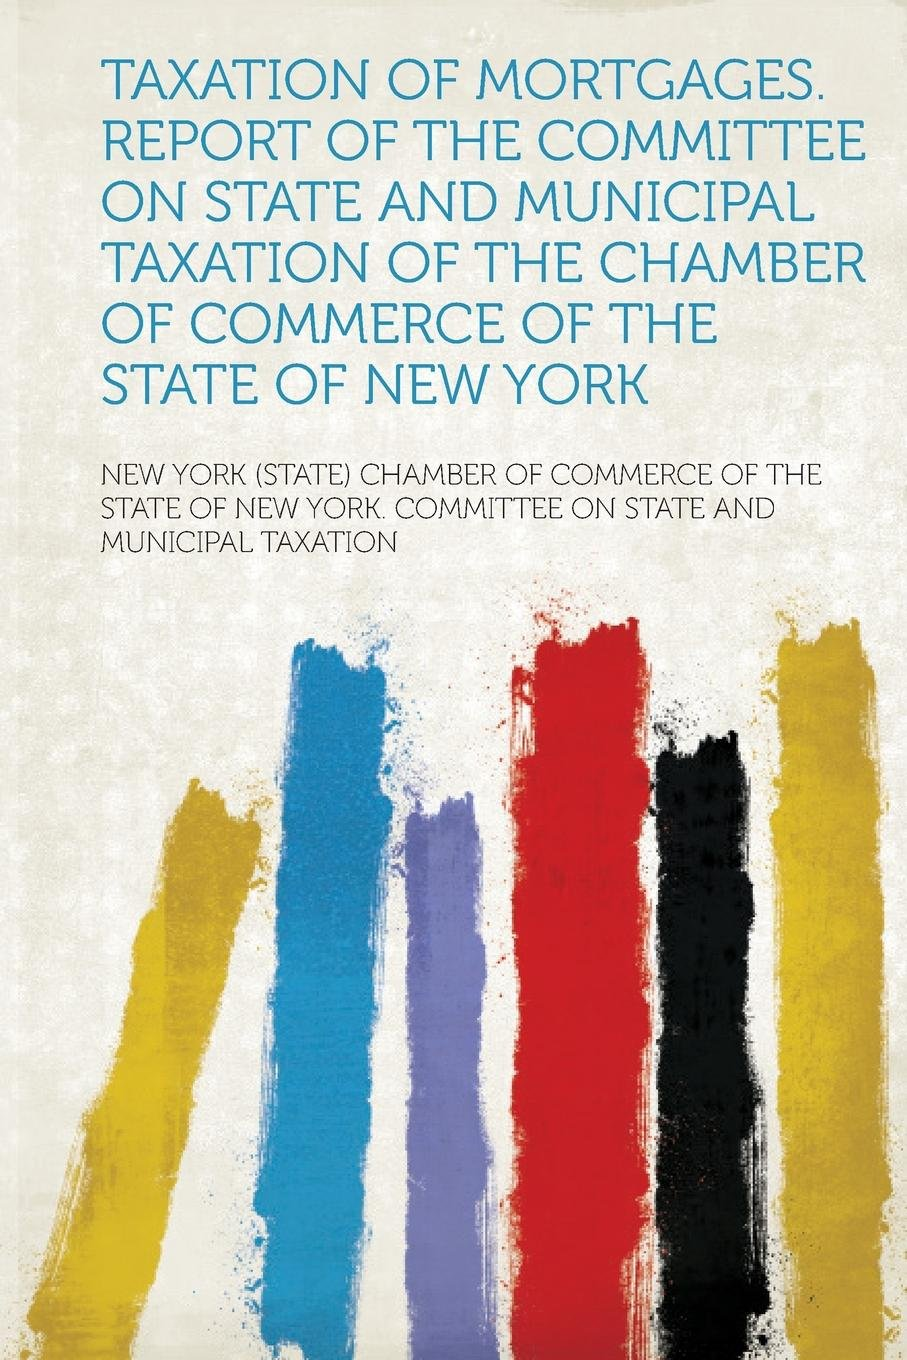 Taxation of Mortgages. Report of the Committee on State and Municipal Taxation of the Chamber of Commerce of the State of New York PDF